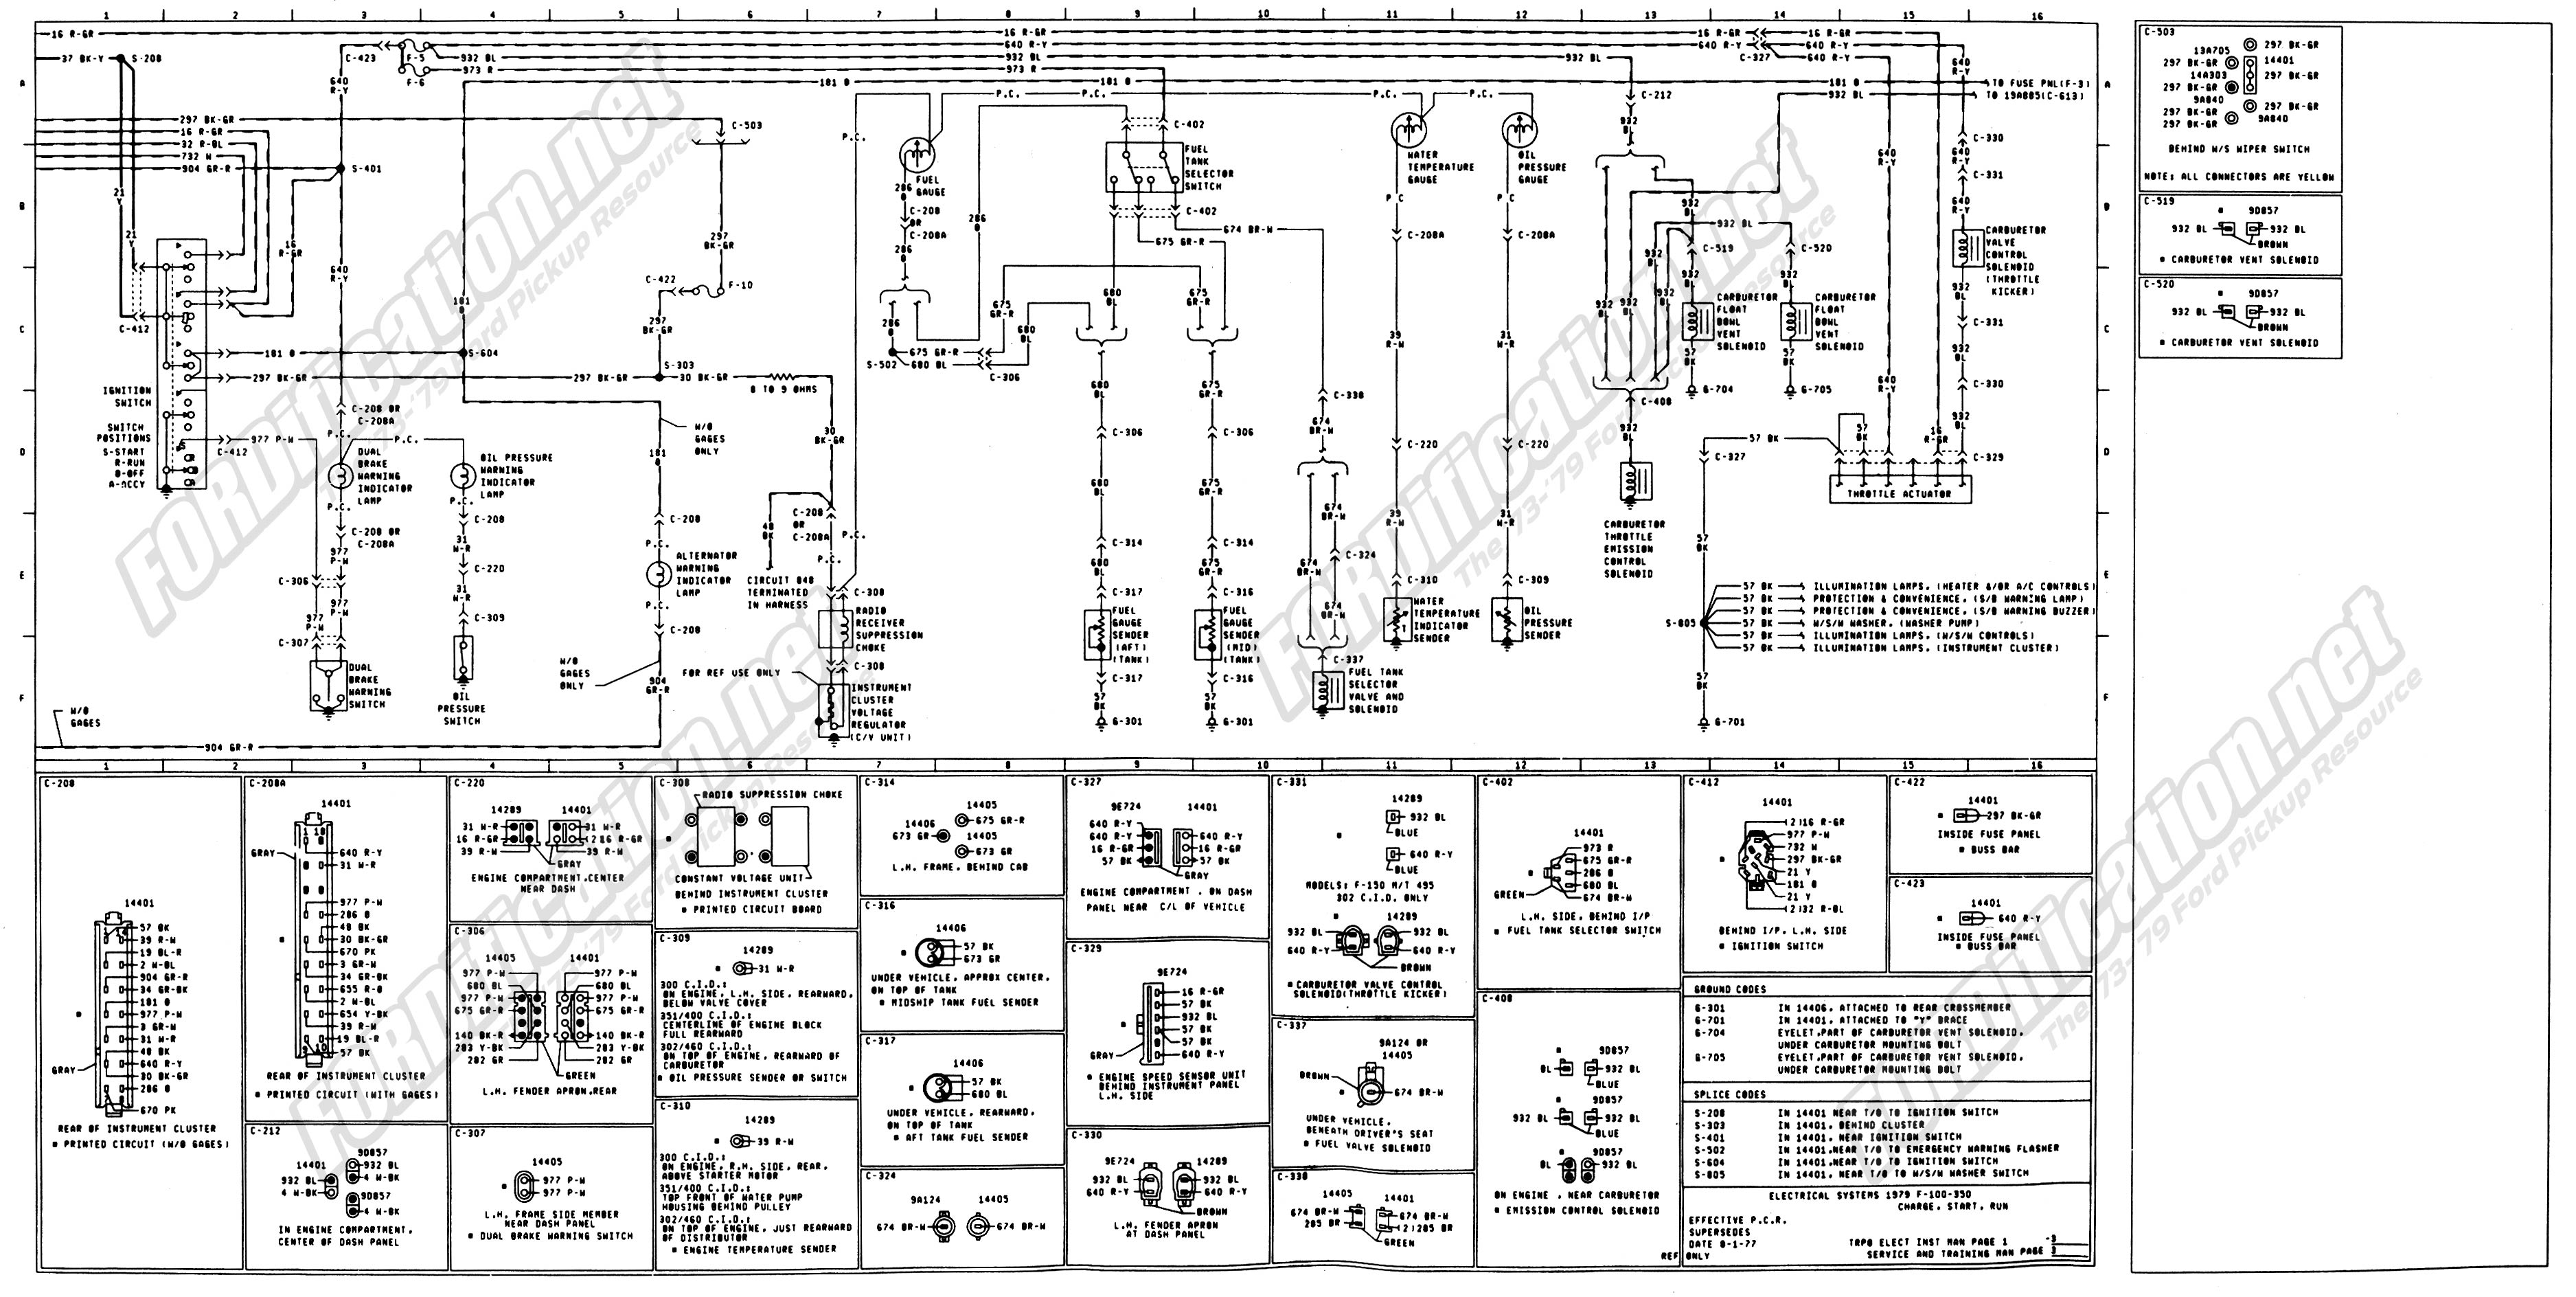 1973 1979 ford truck wiring diagrams & schematics fordification net 1974 Ford F100 Wiring Diagram 1974 Ford F100 Wiring Diagram #3 1974 ford f100 wiring diagram